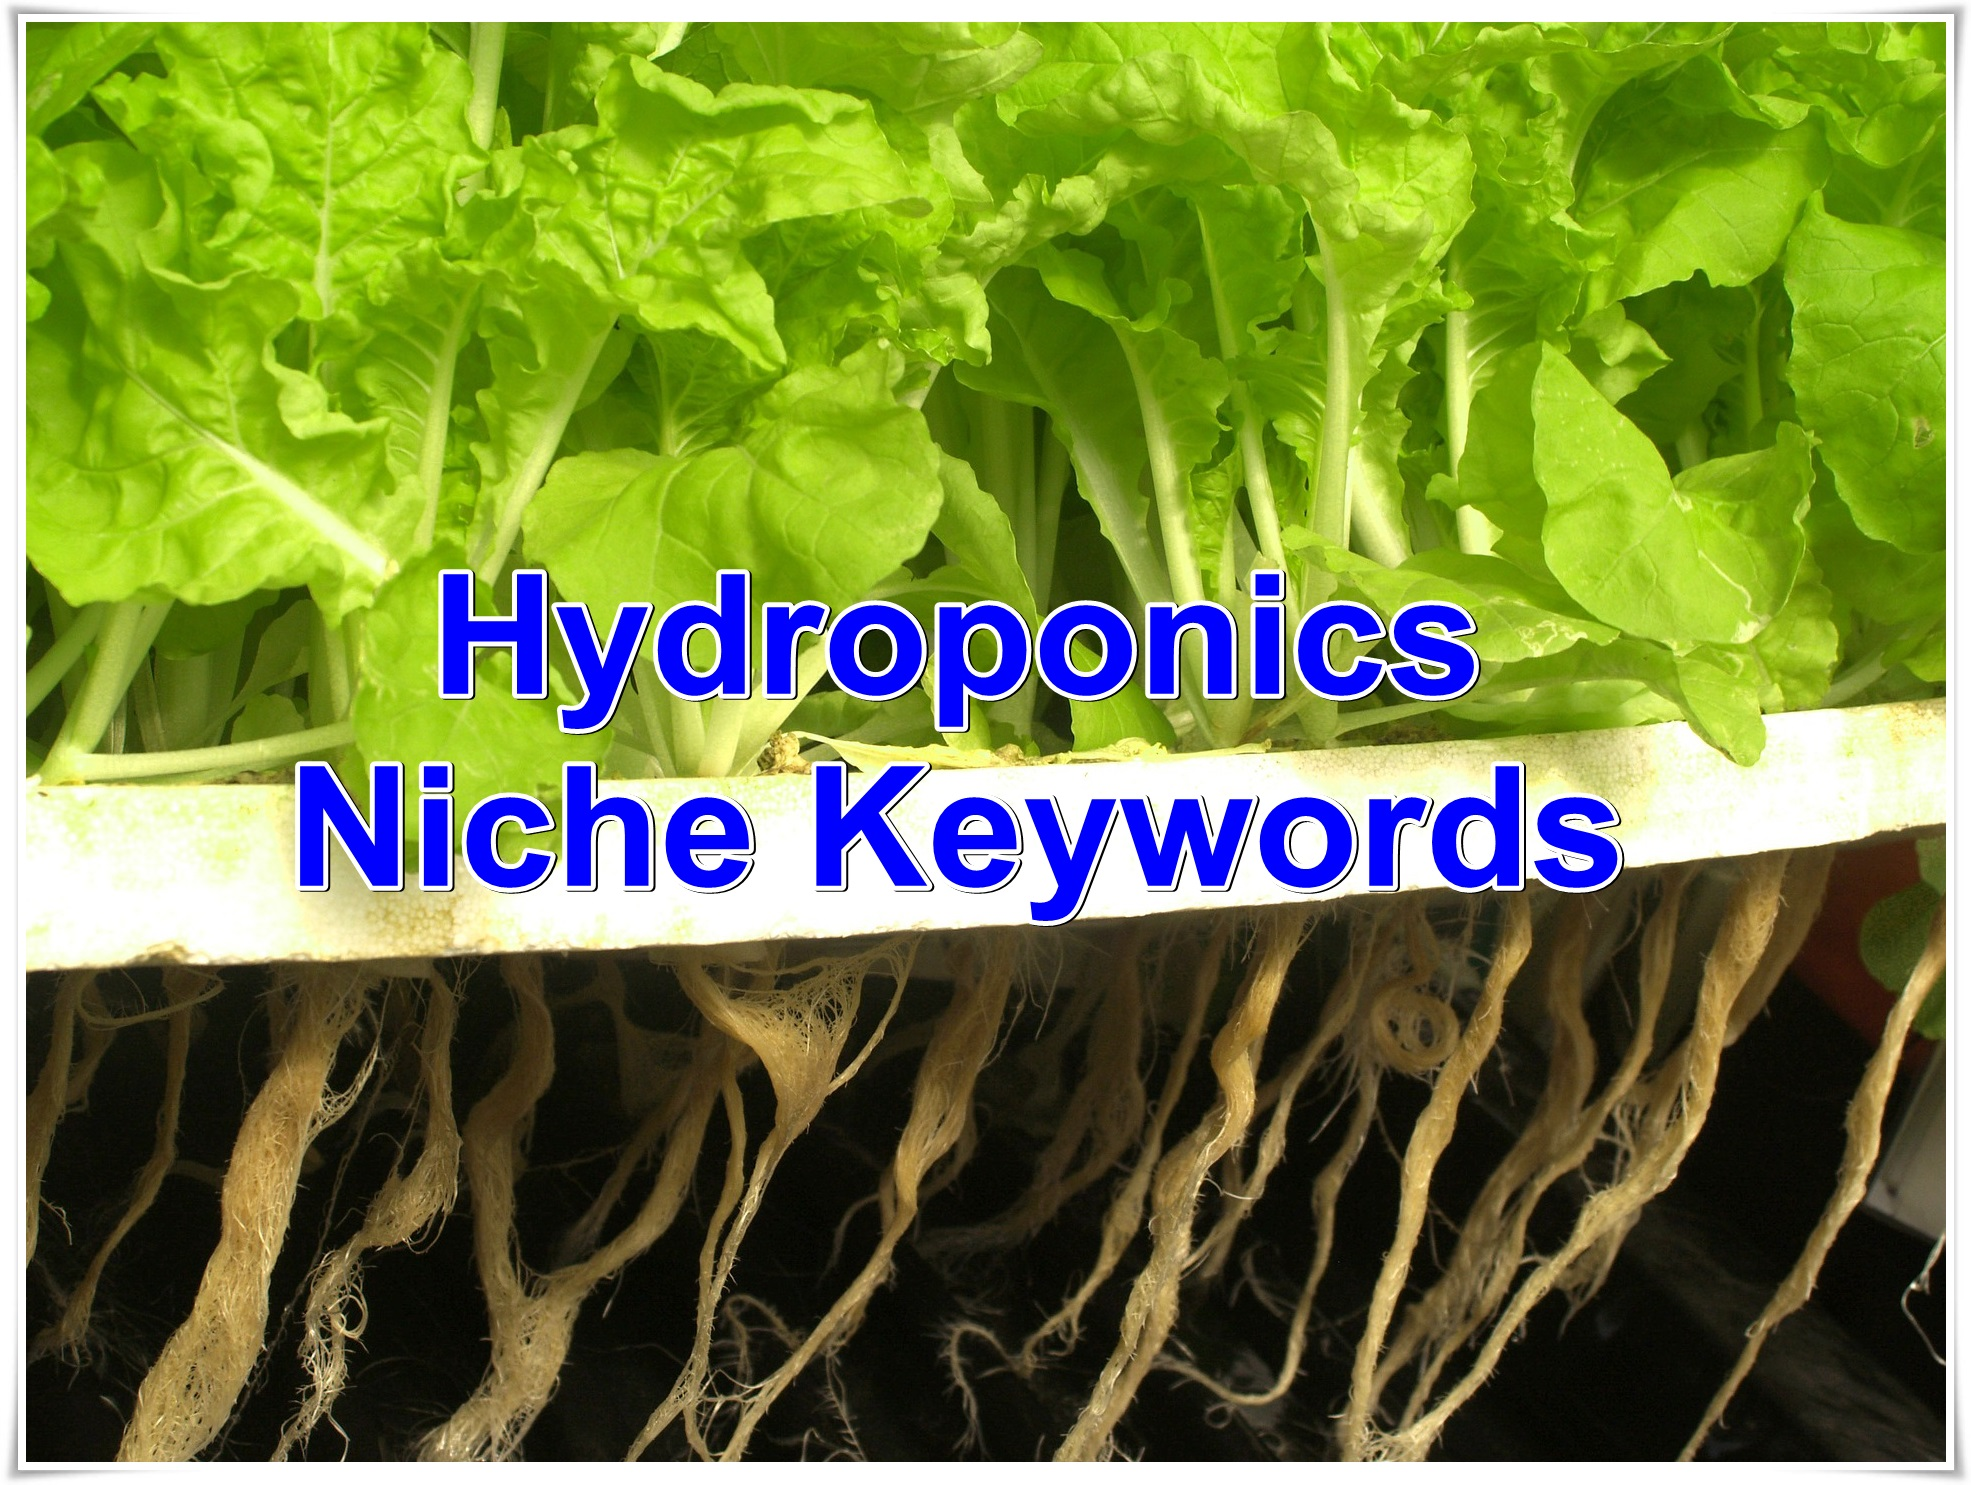 Niche keywords research Hydroponics 2019 Instant Download